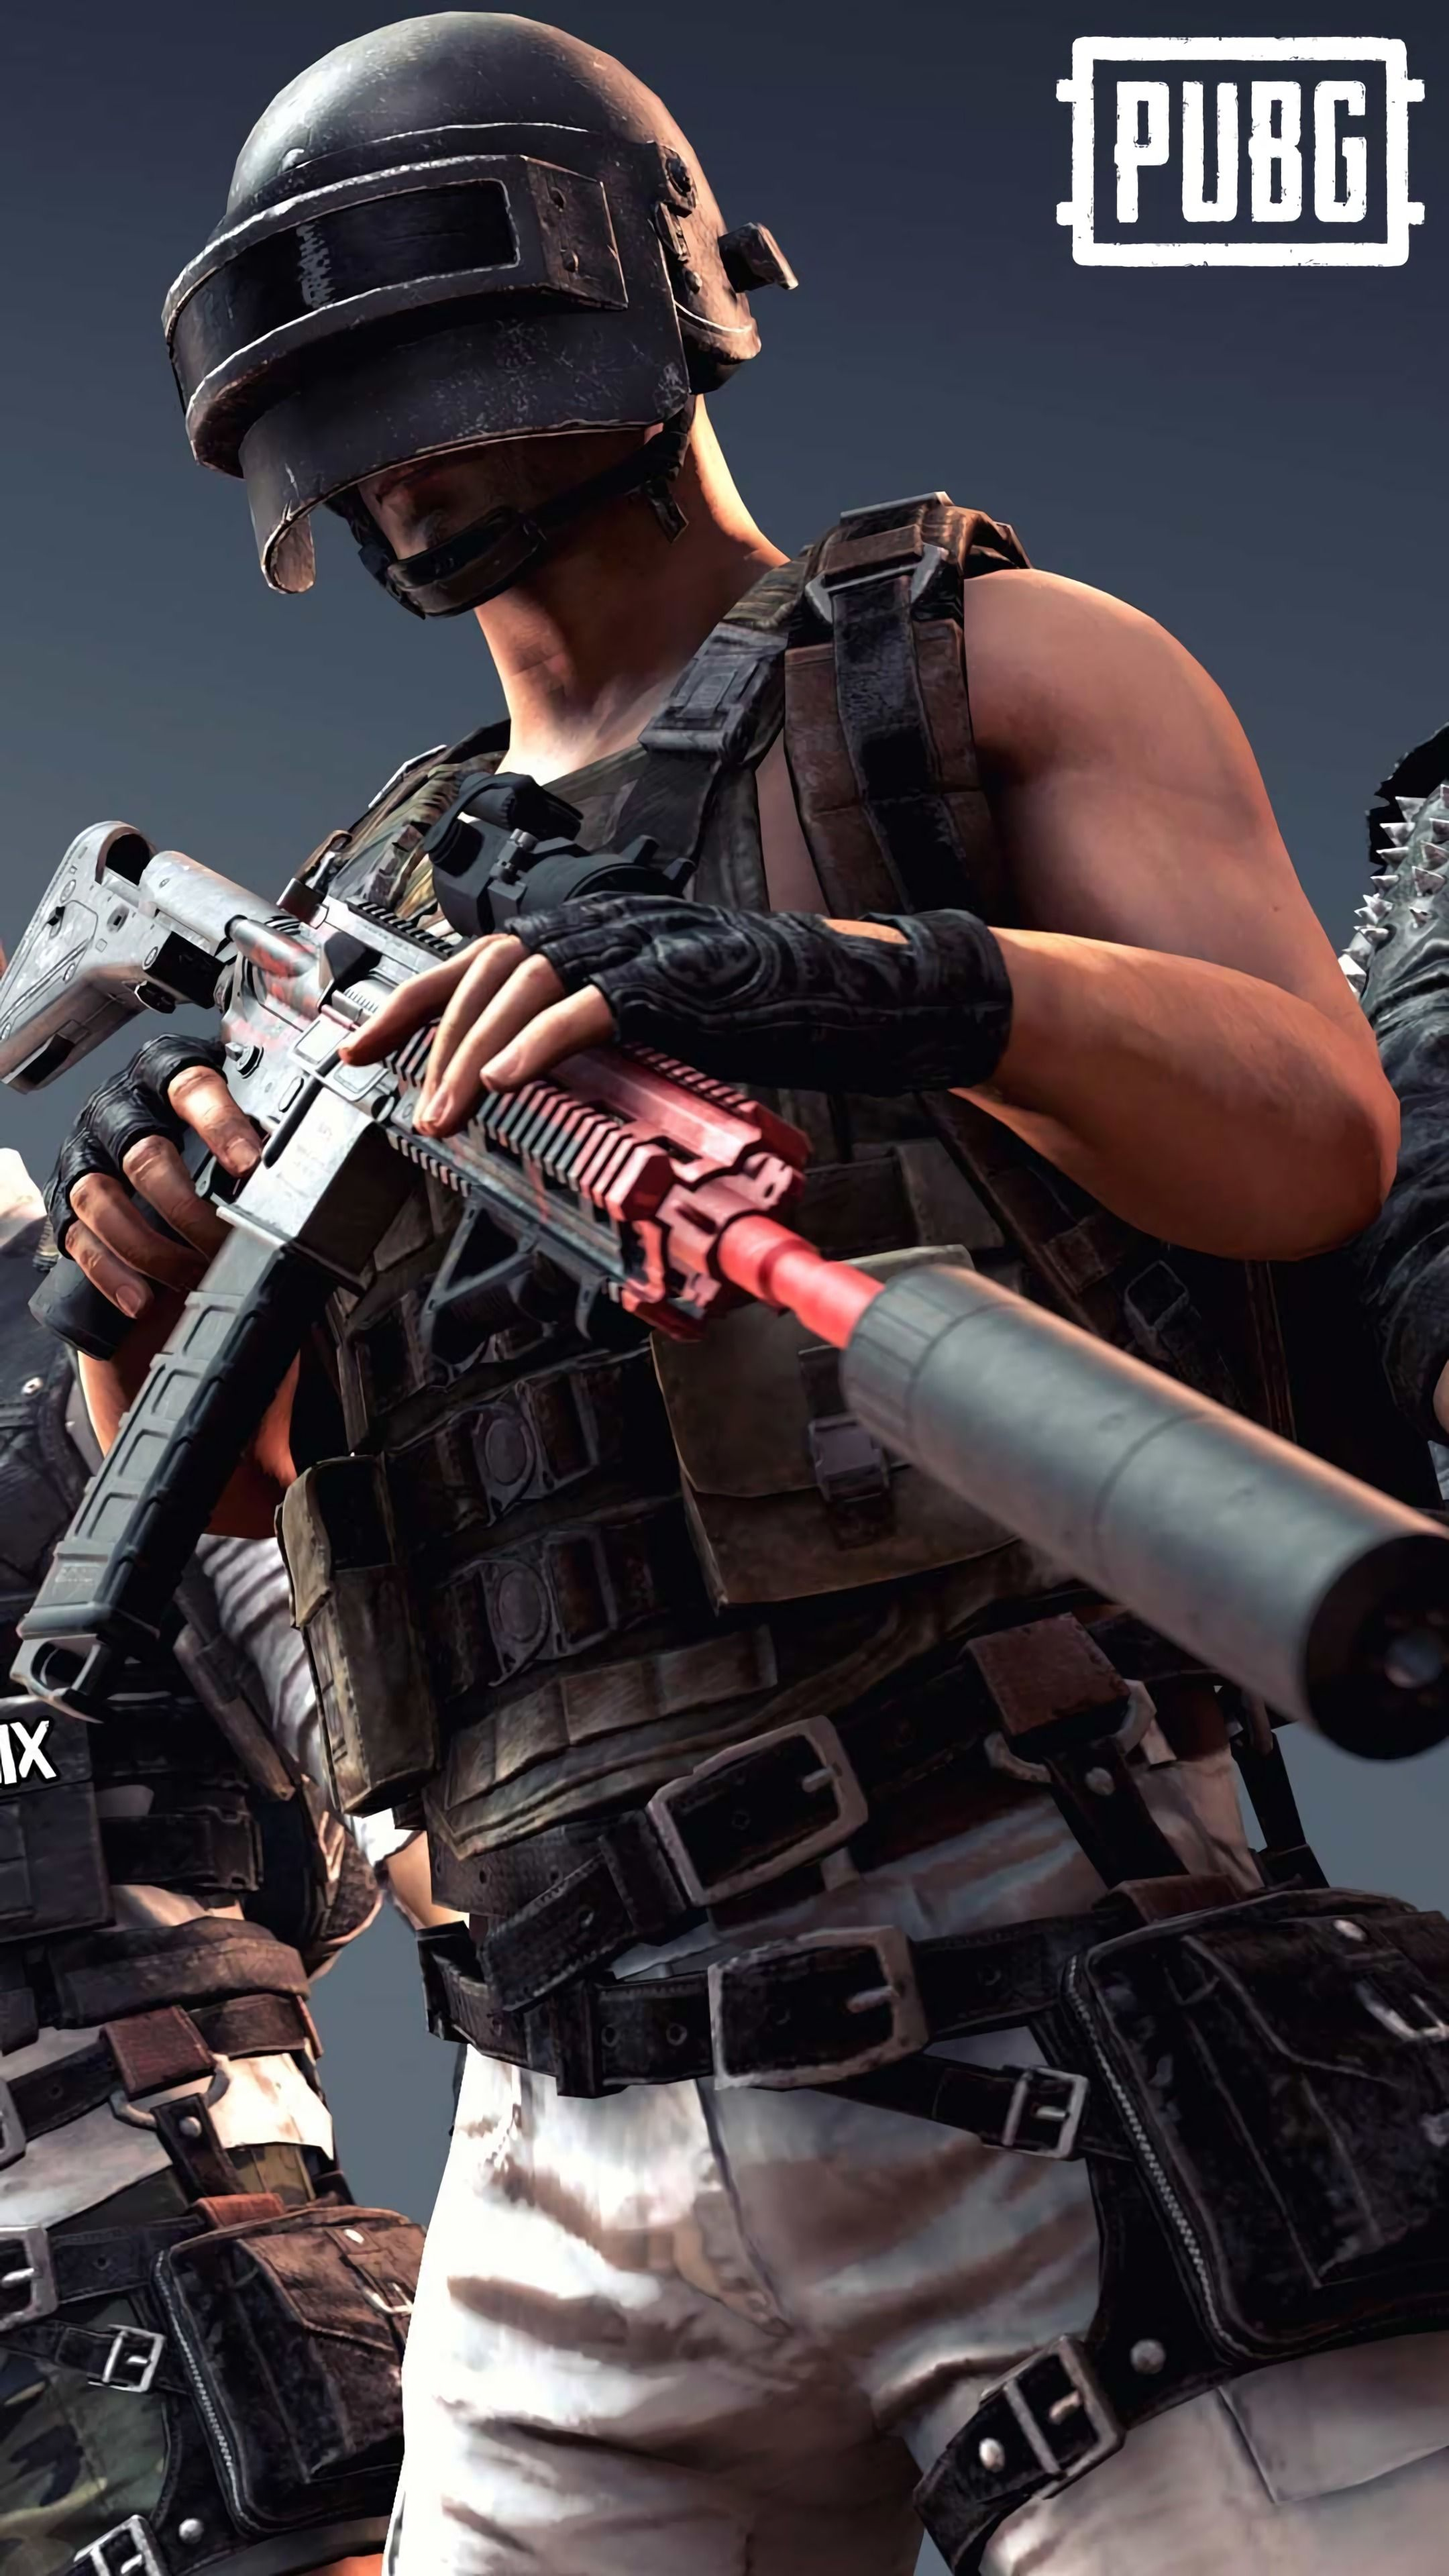 PUBG 9 in 2020 Android phone backgrounds, Mobile